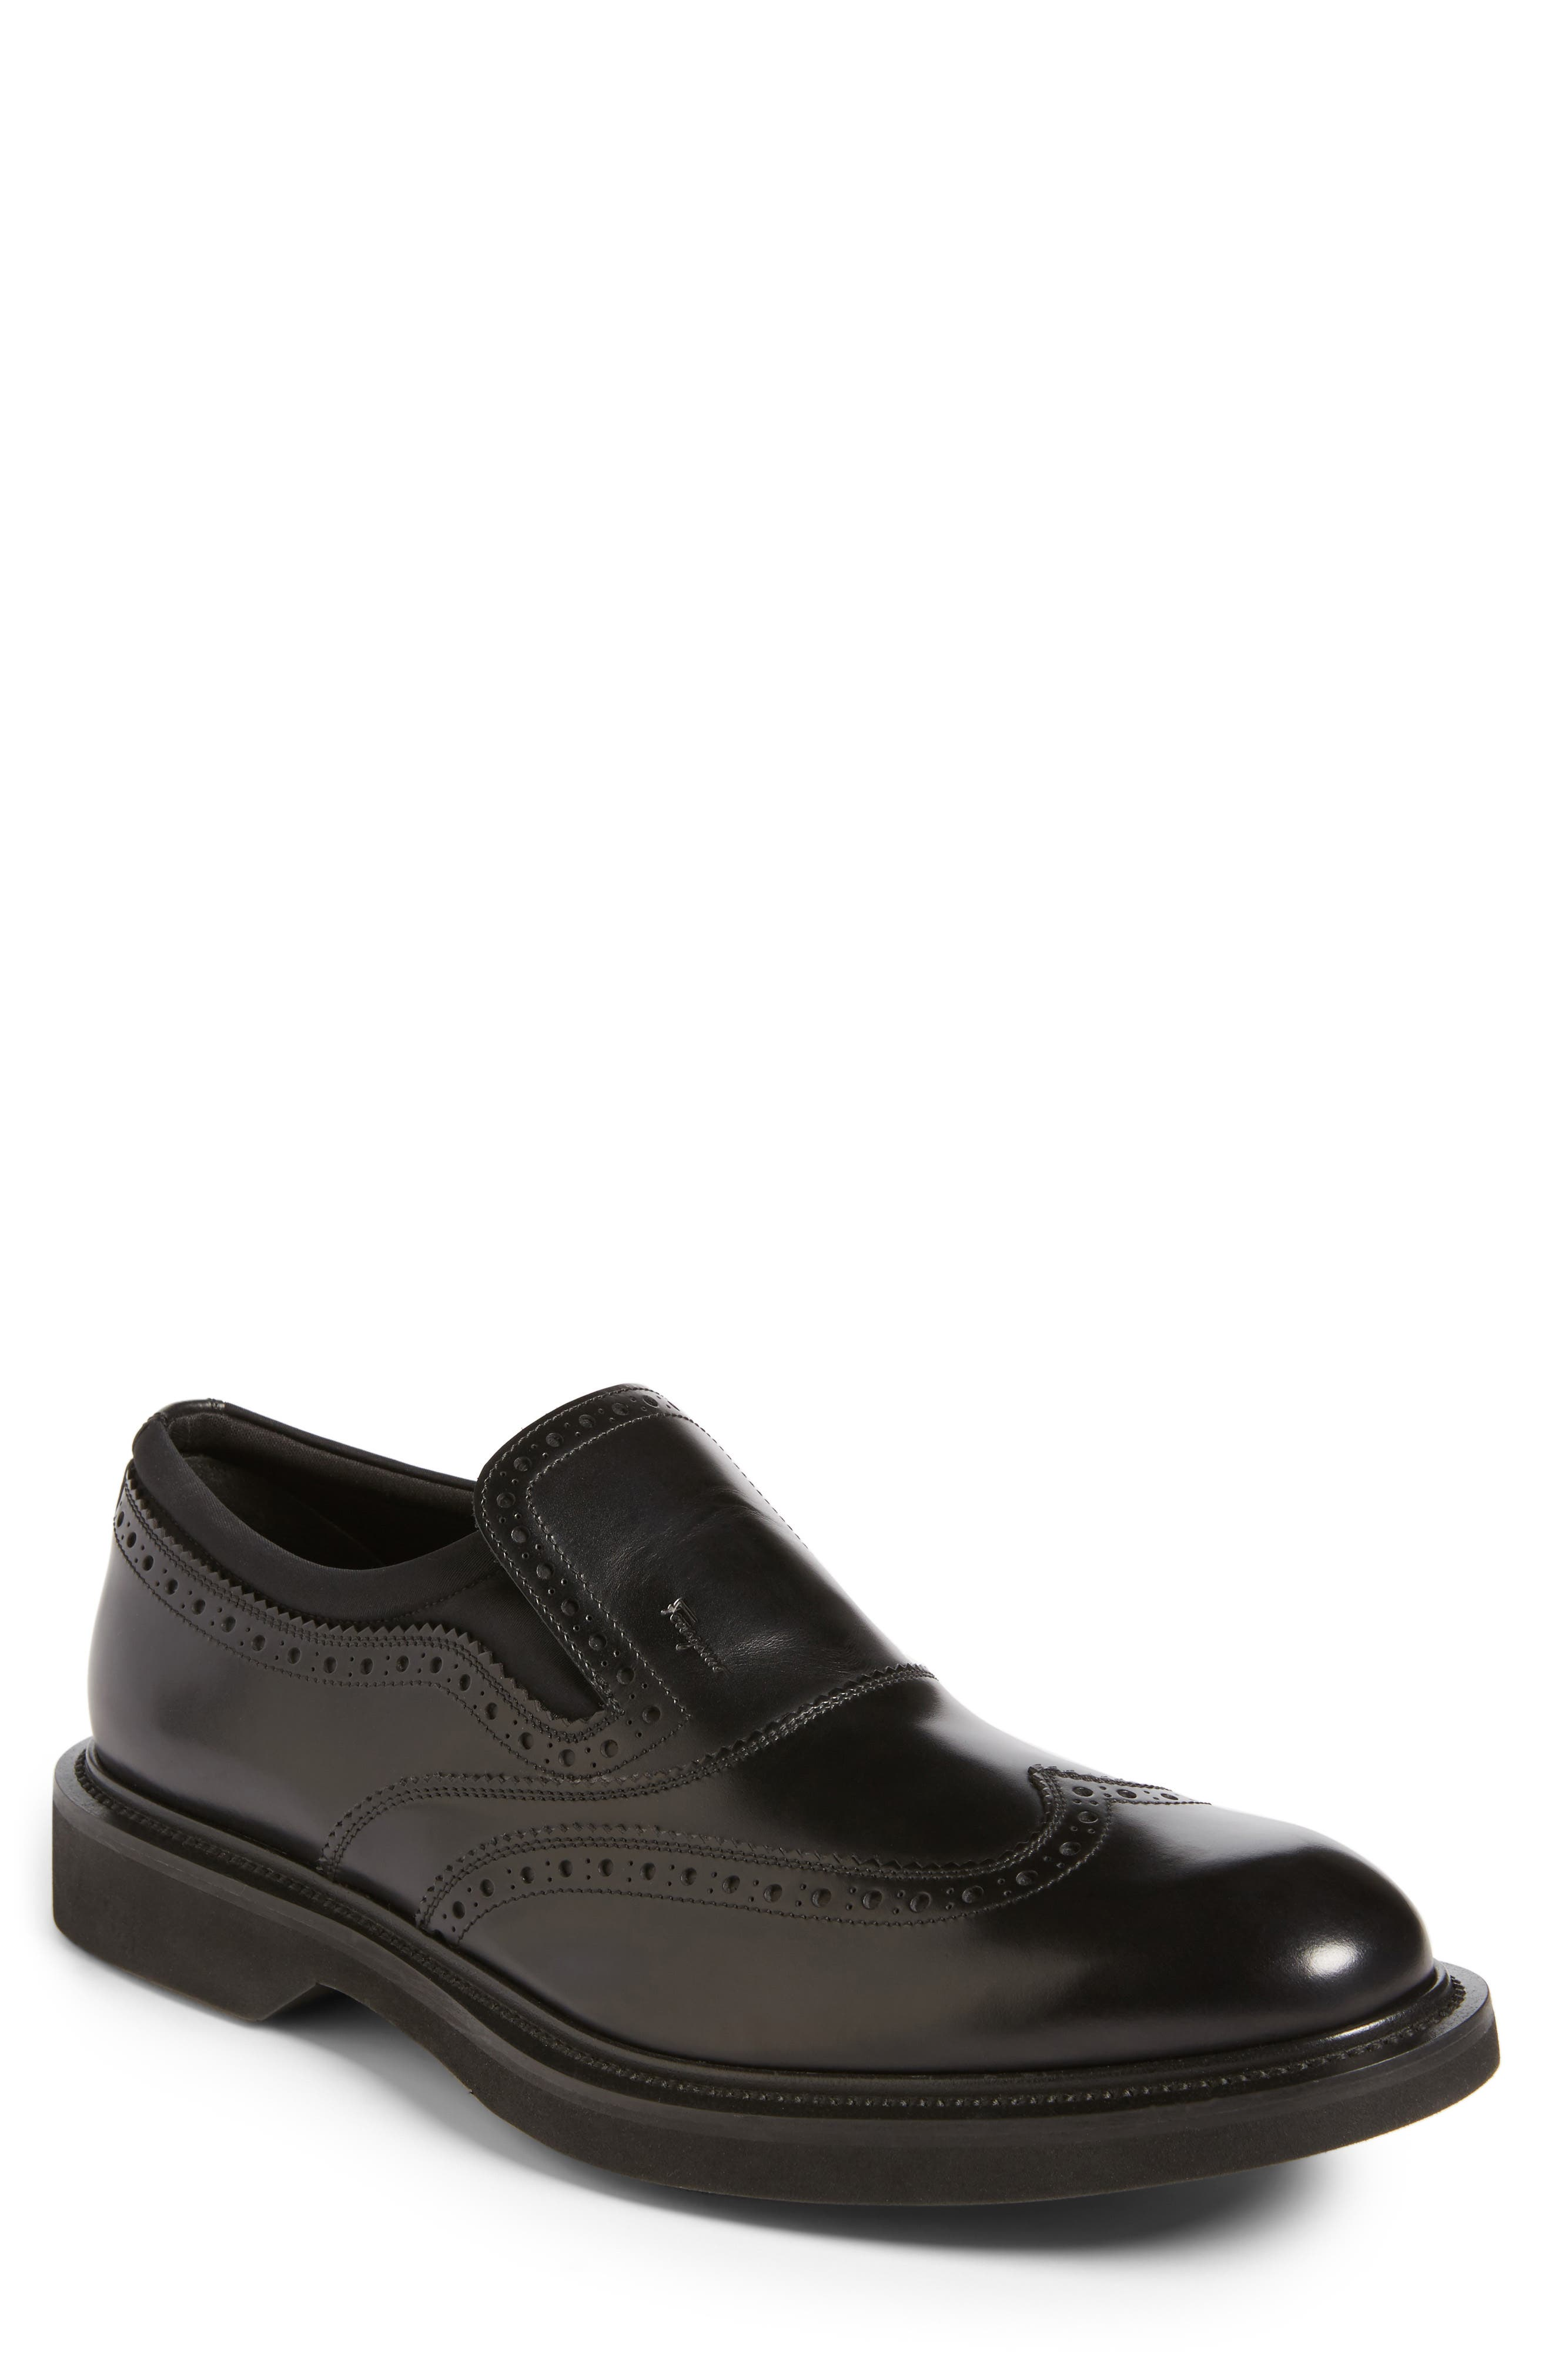 Salvatore Ferragamo Dowling Venetian Loafer (Men)